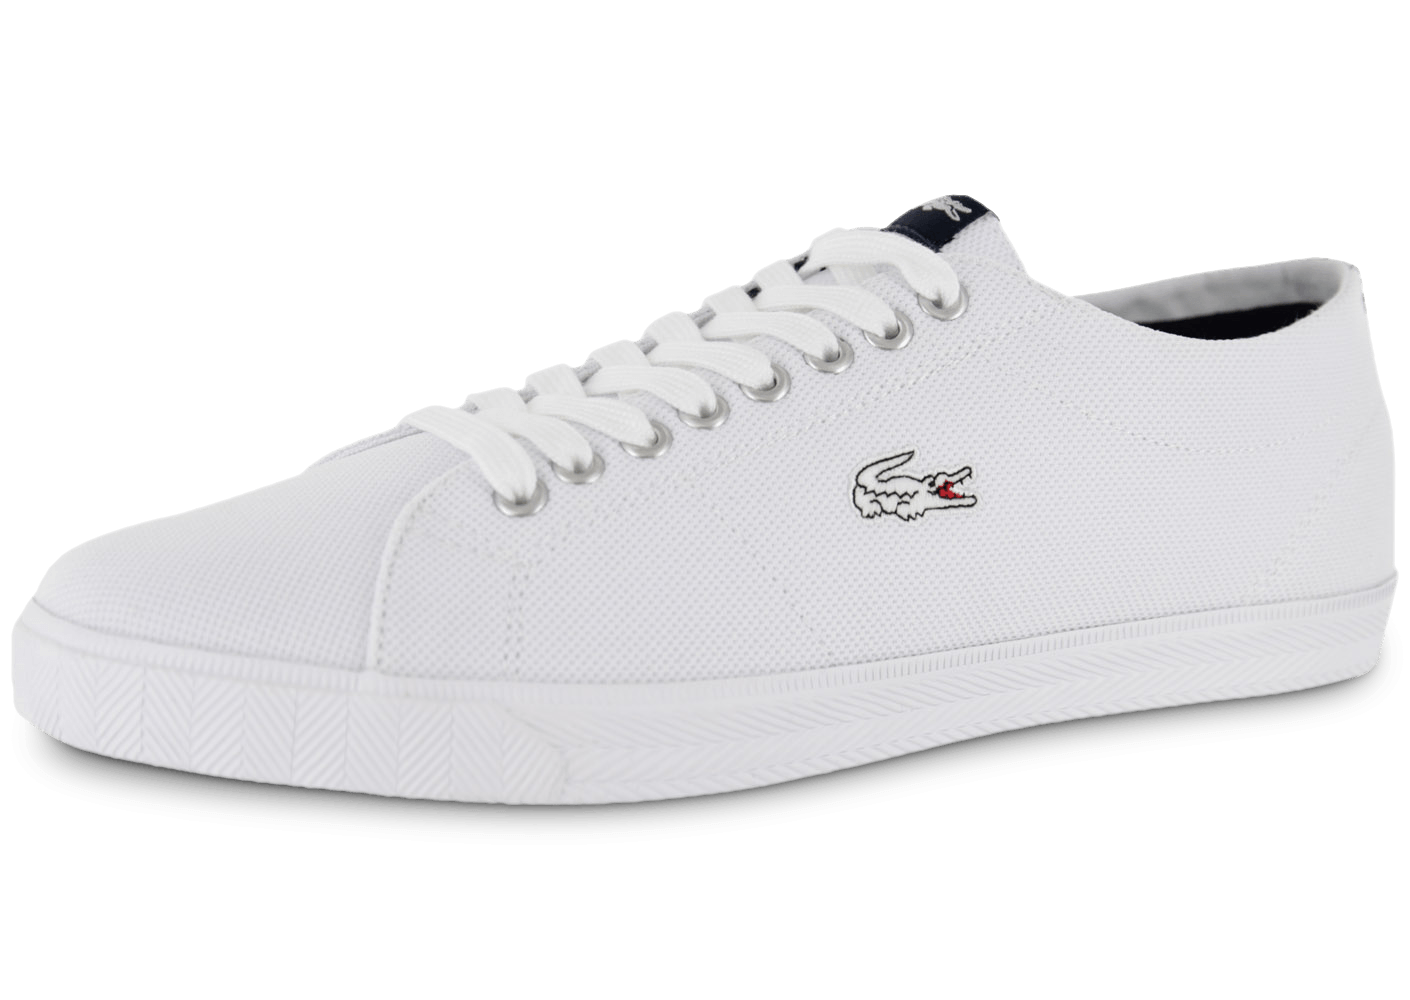 517c20cf66 Marcel Homme Blanche Chausport Lacoste Baskets Chaussures Toile ZXS8n18